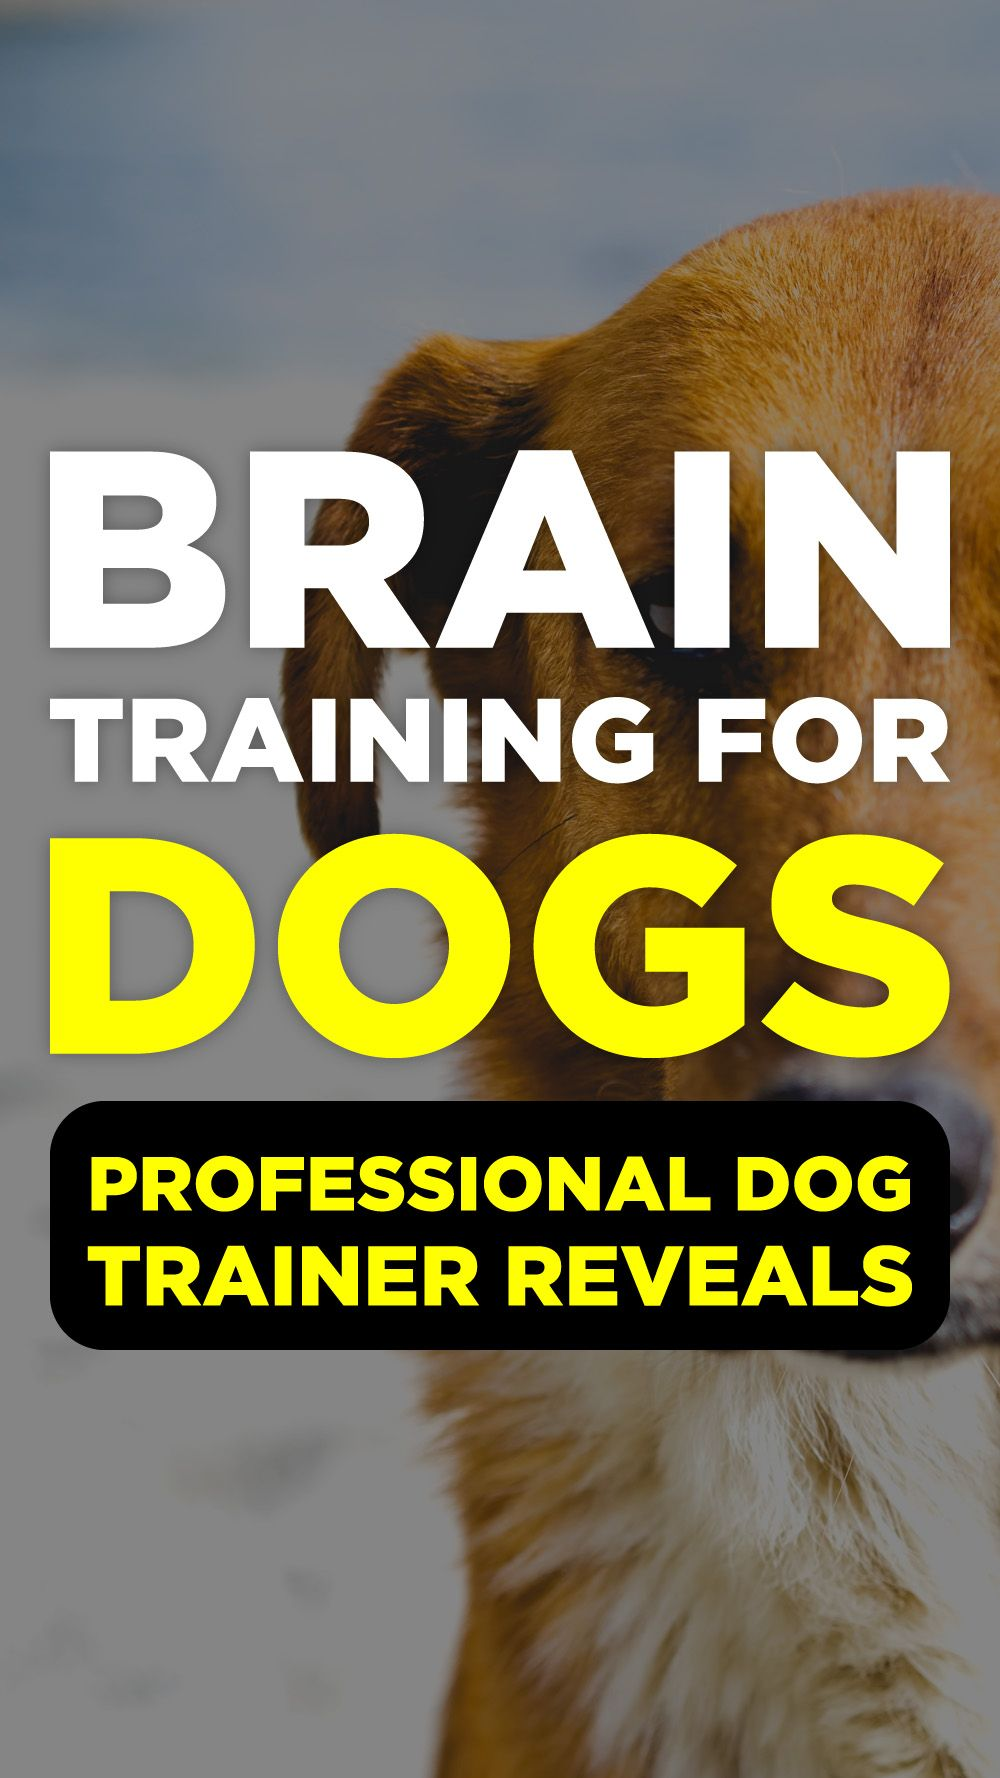 Brain Training For Dogs Review Dog Training Dog Training Tools